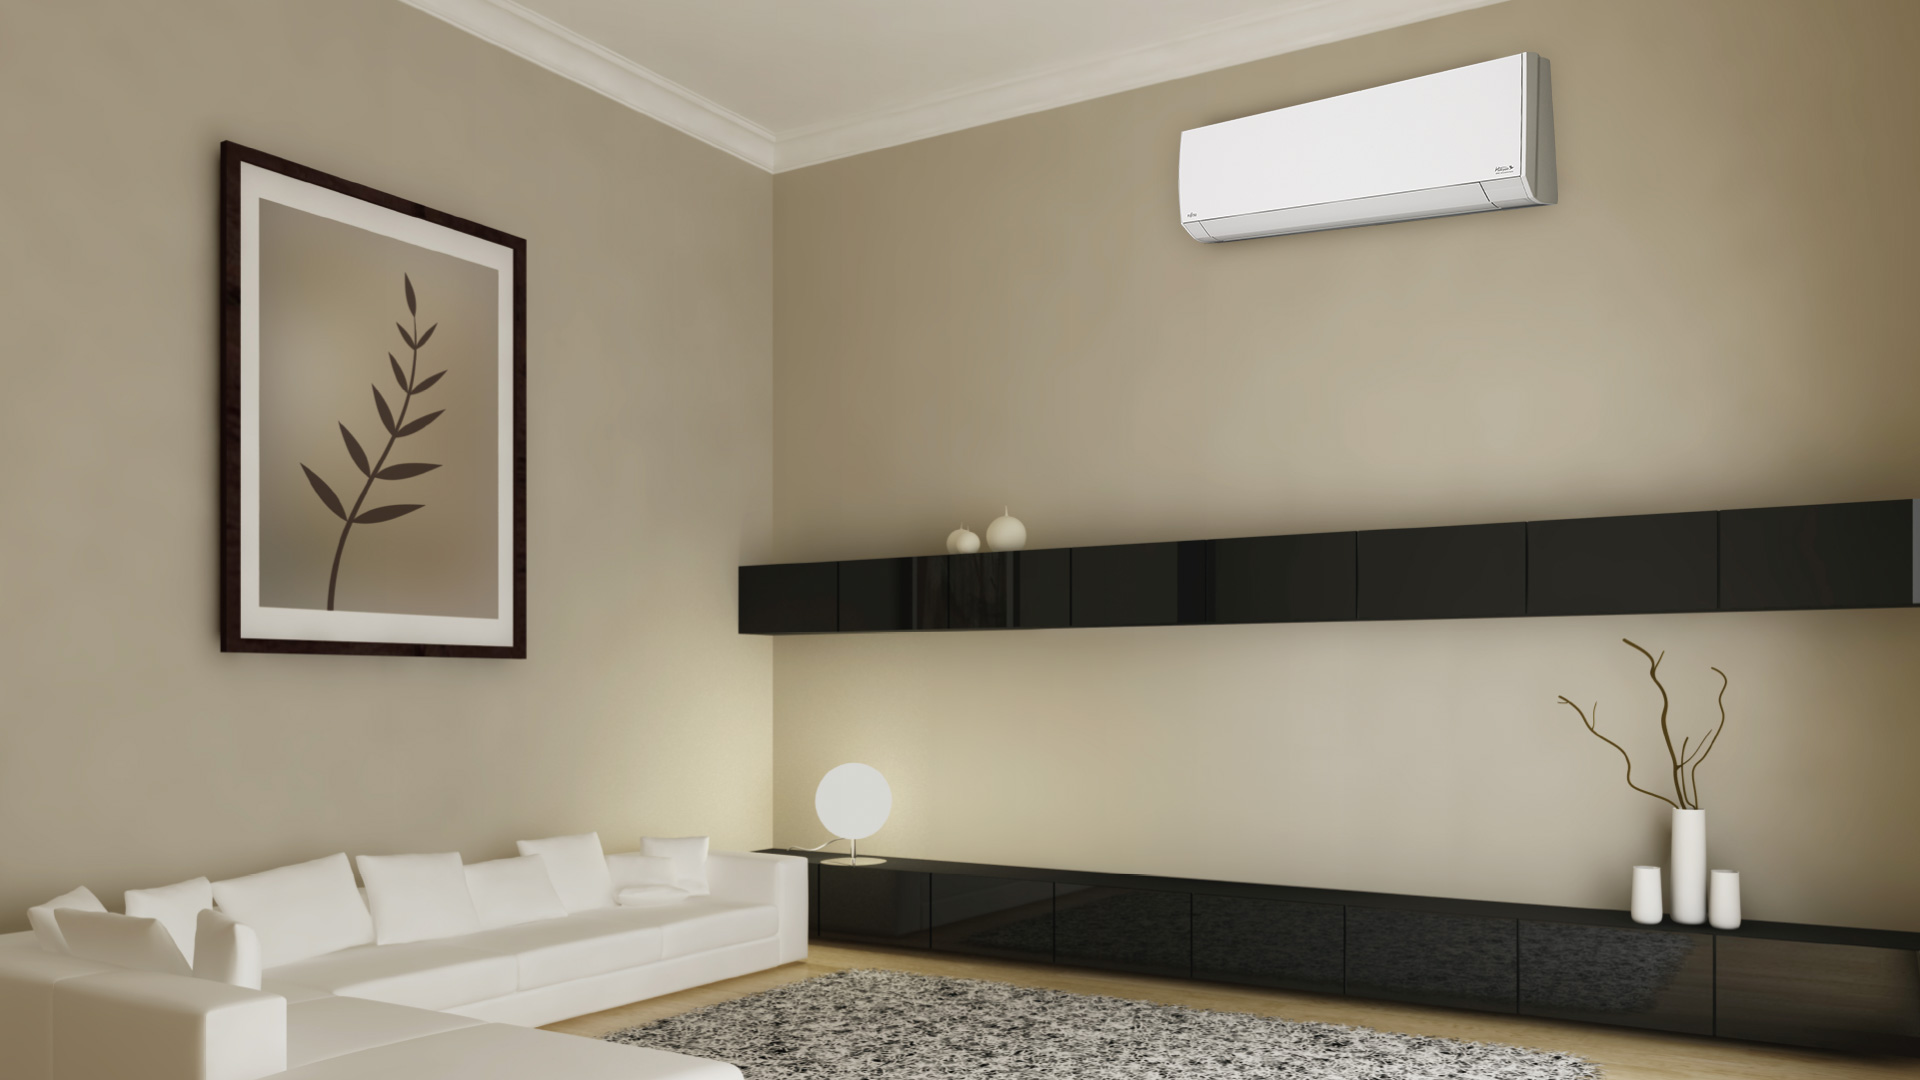 Halcyon Single Room Mini Split Systems Air Conditioner